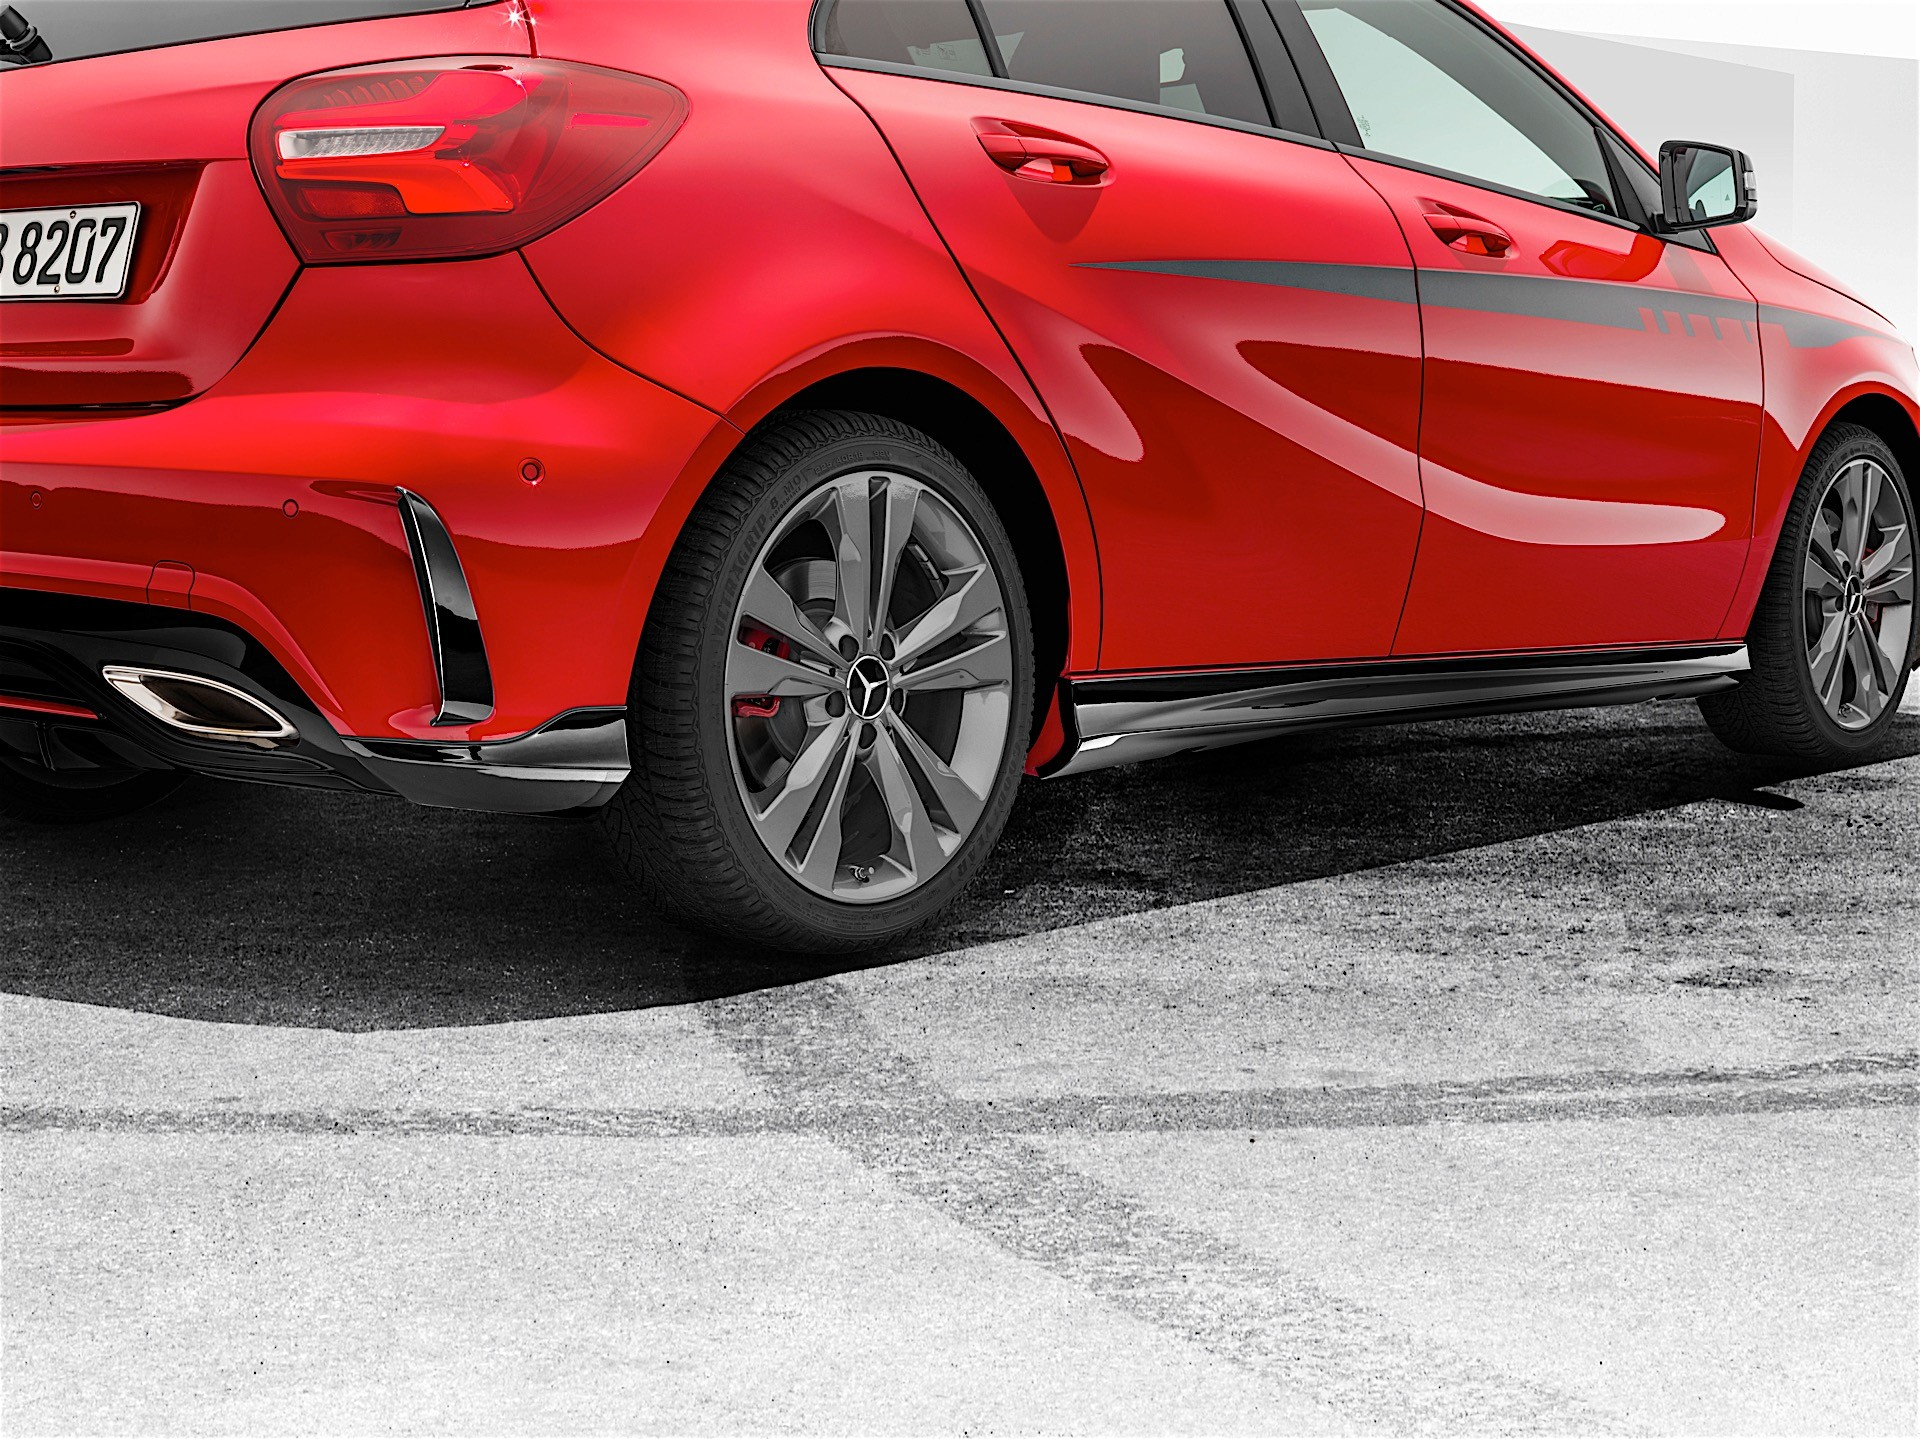 Mercedes-Benz Introduces AMG Body Kit for A-Class